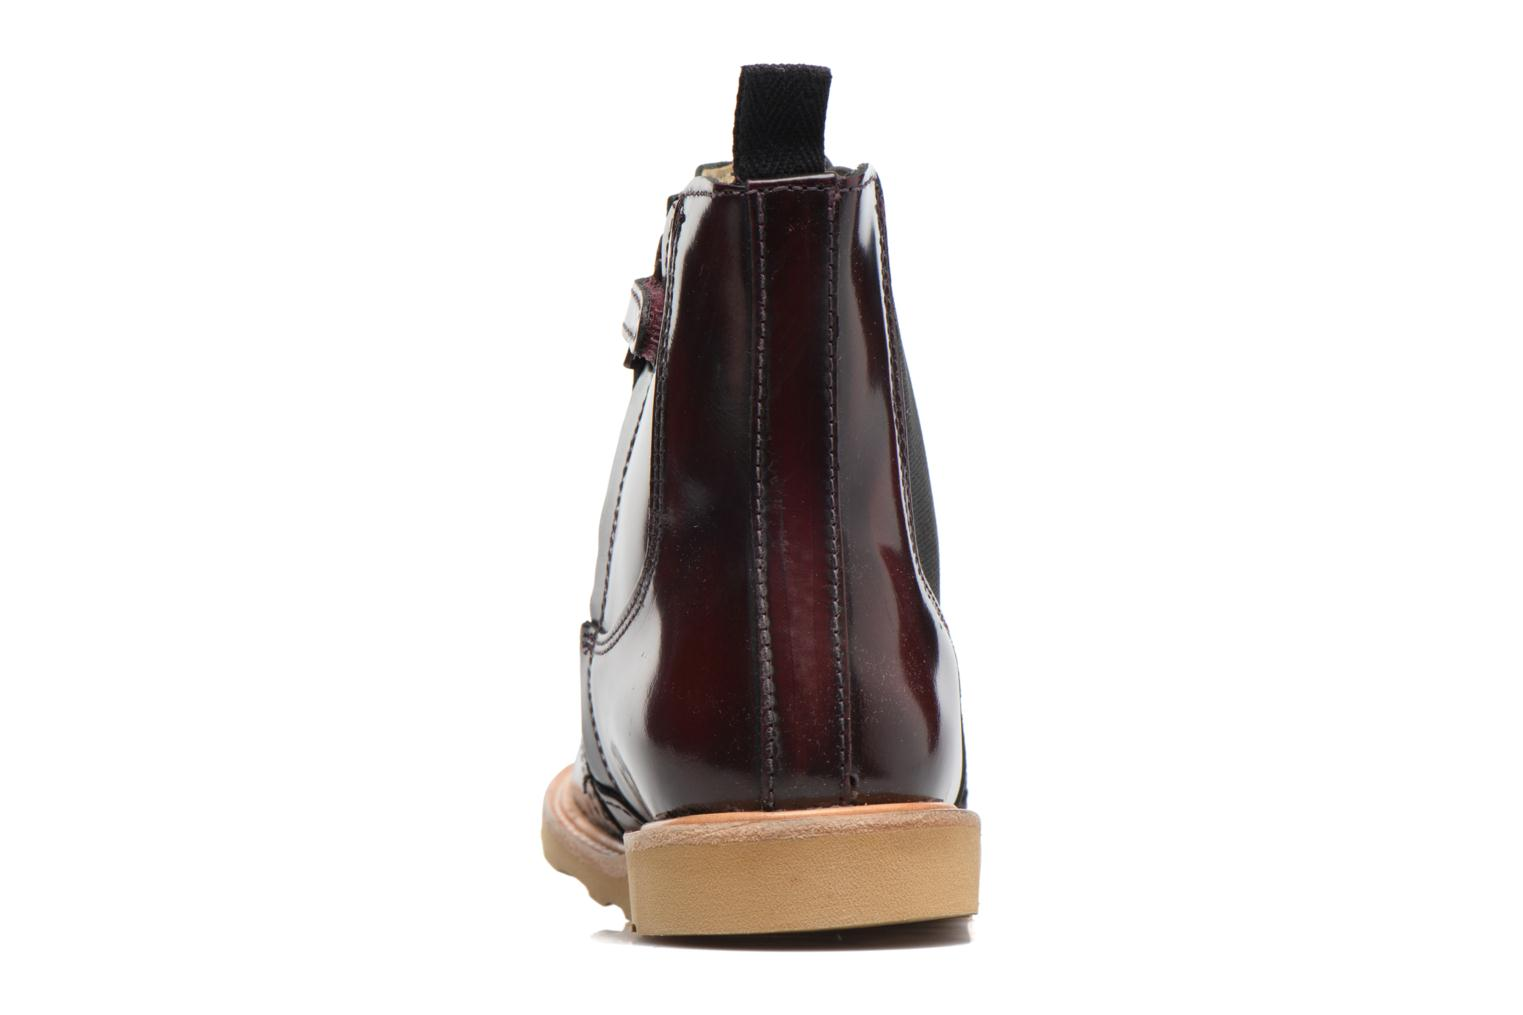 Shine Soles High Young Francis Leather Oxblood HqSxwnng0Z